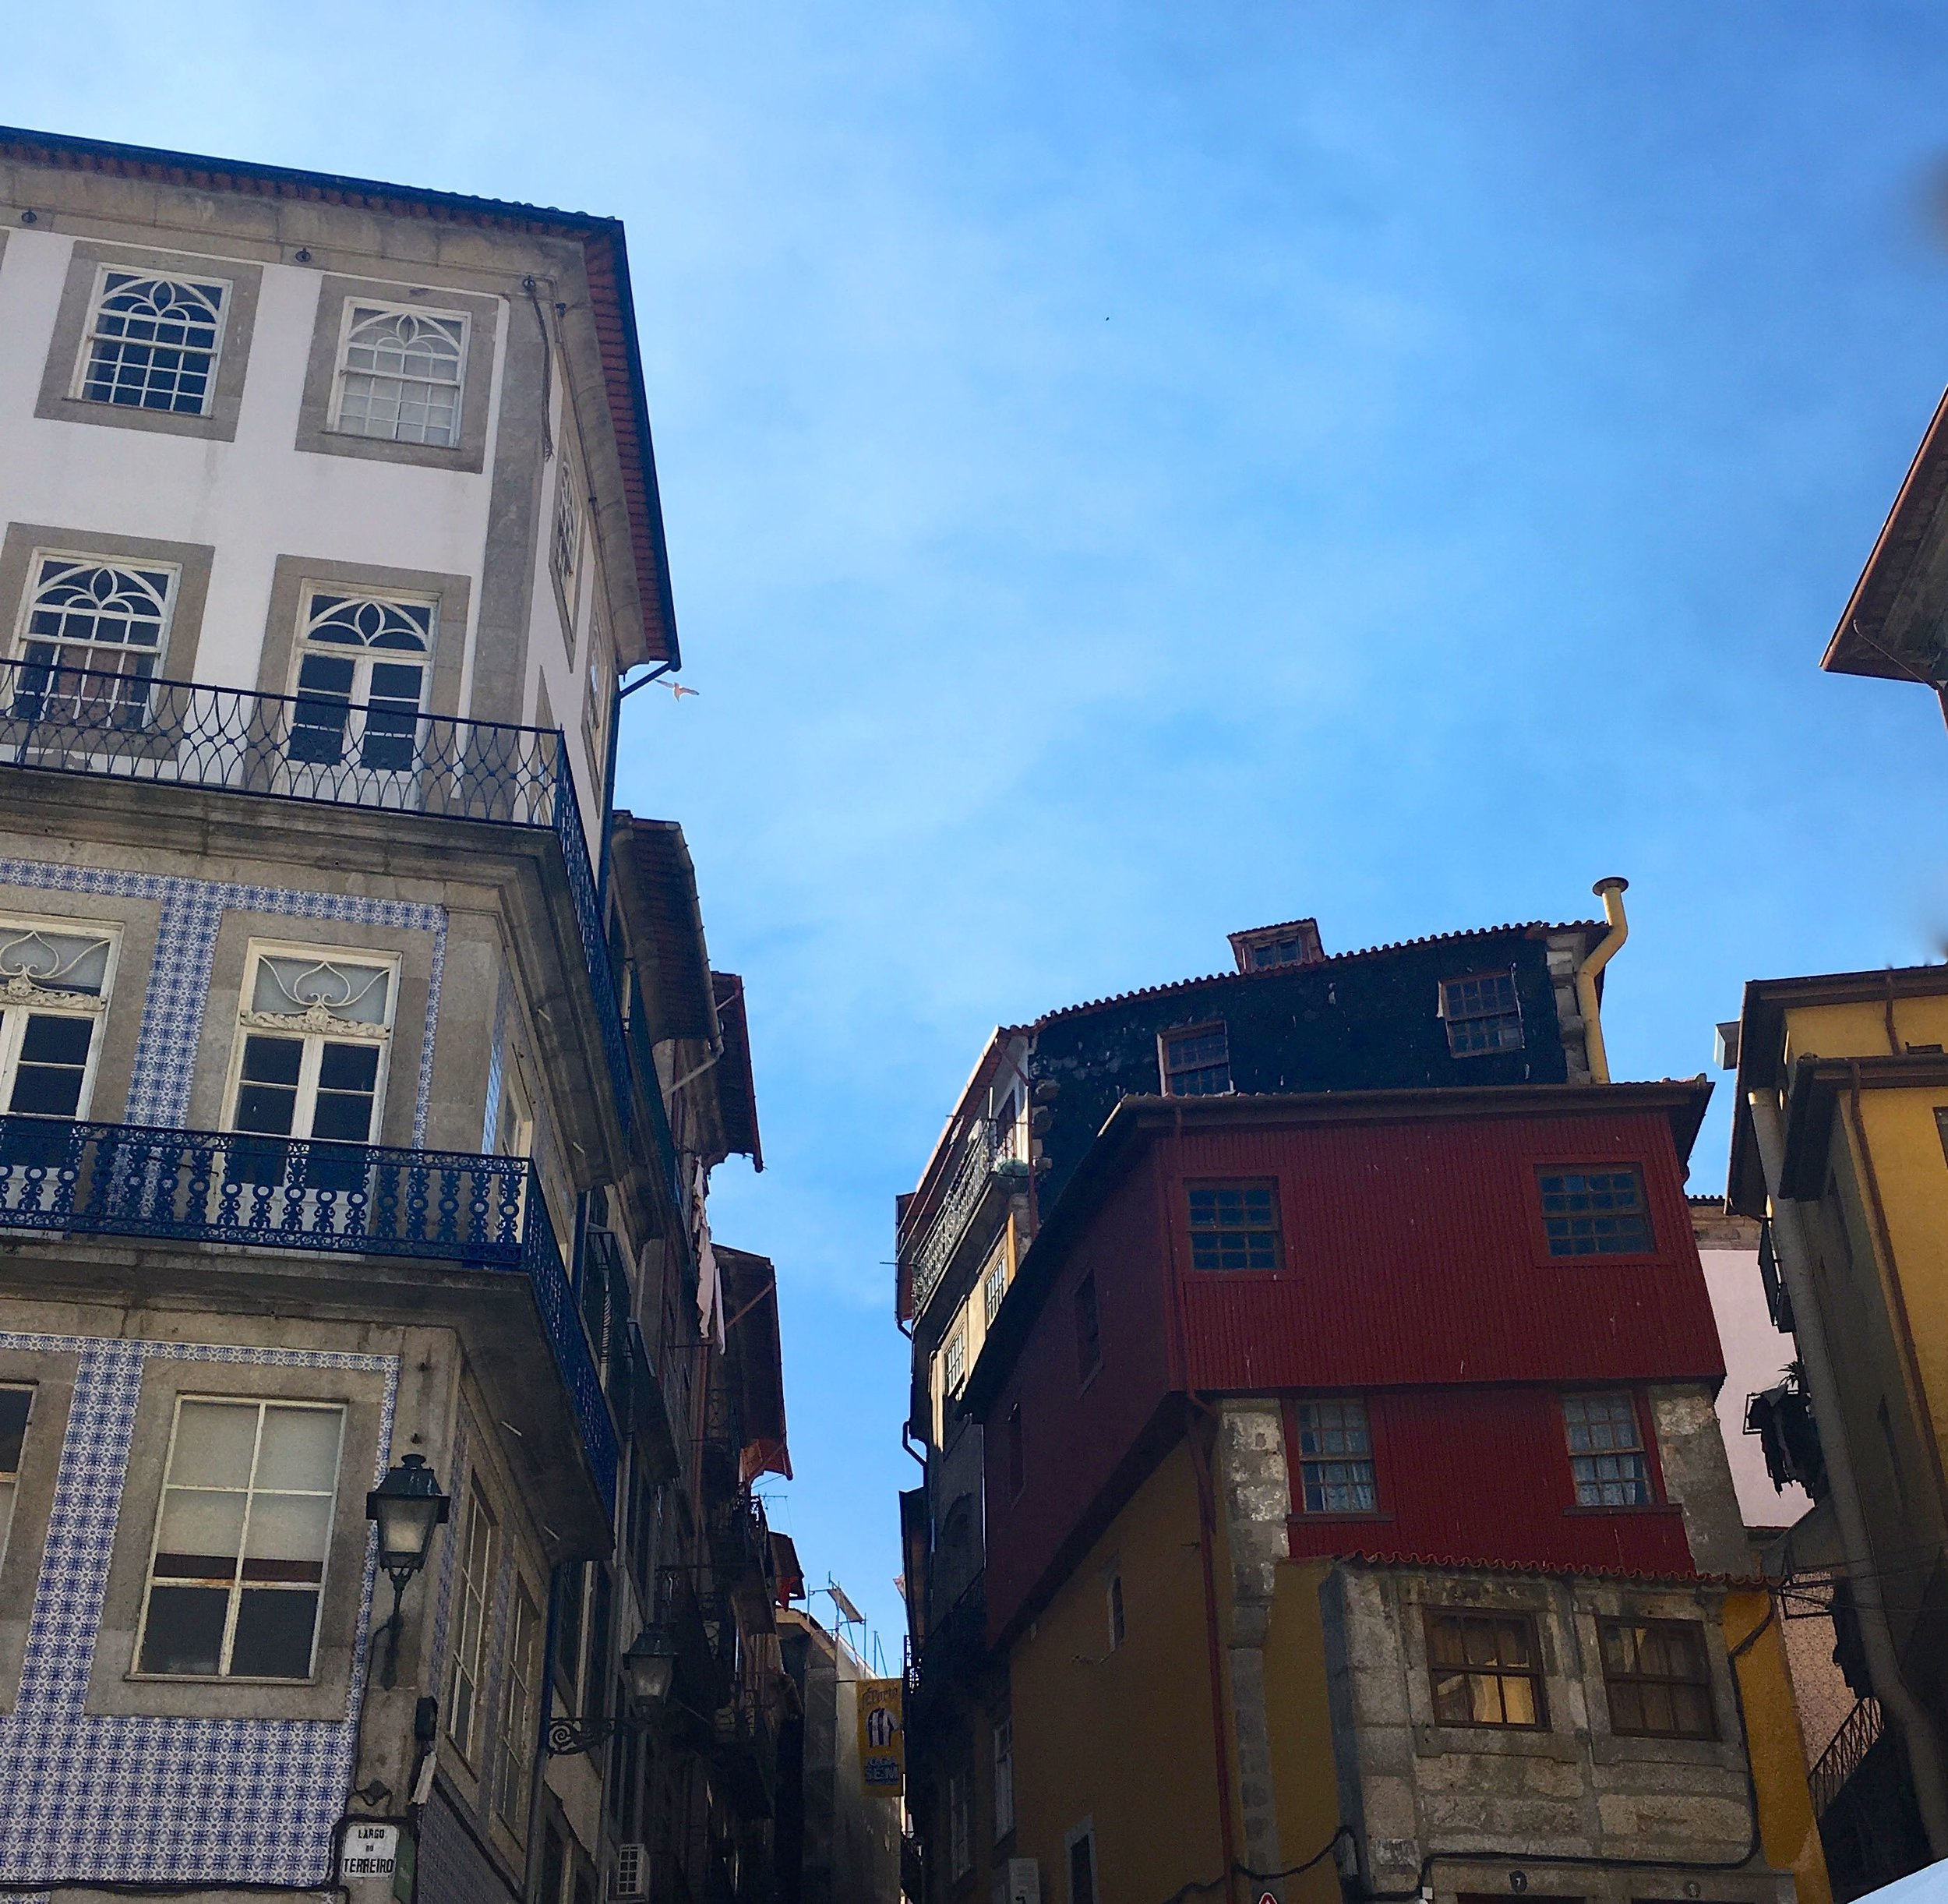 narrow streets and extending upwards